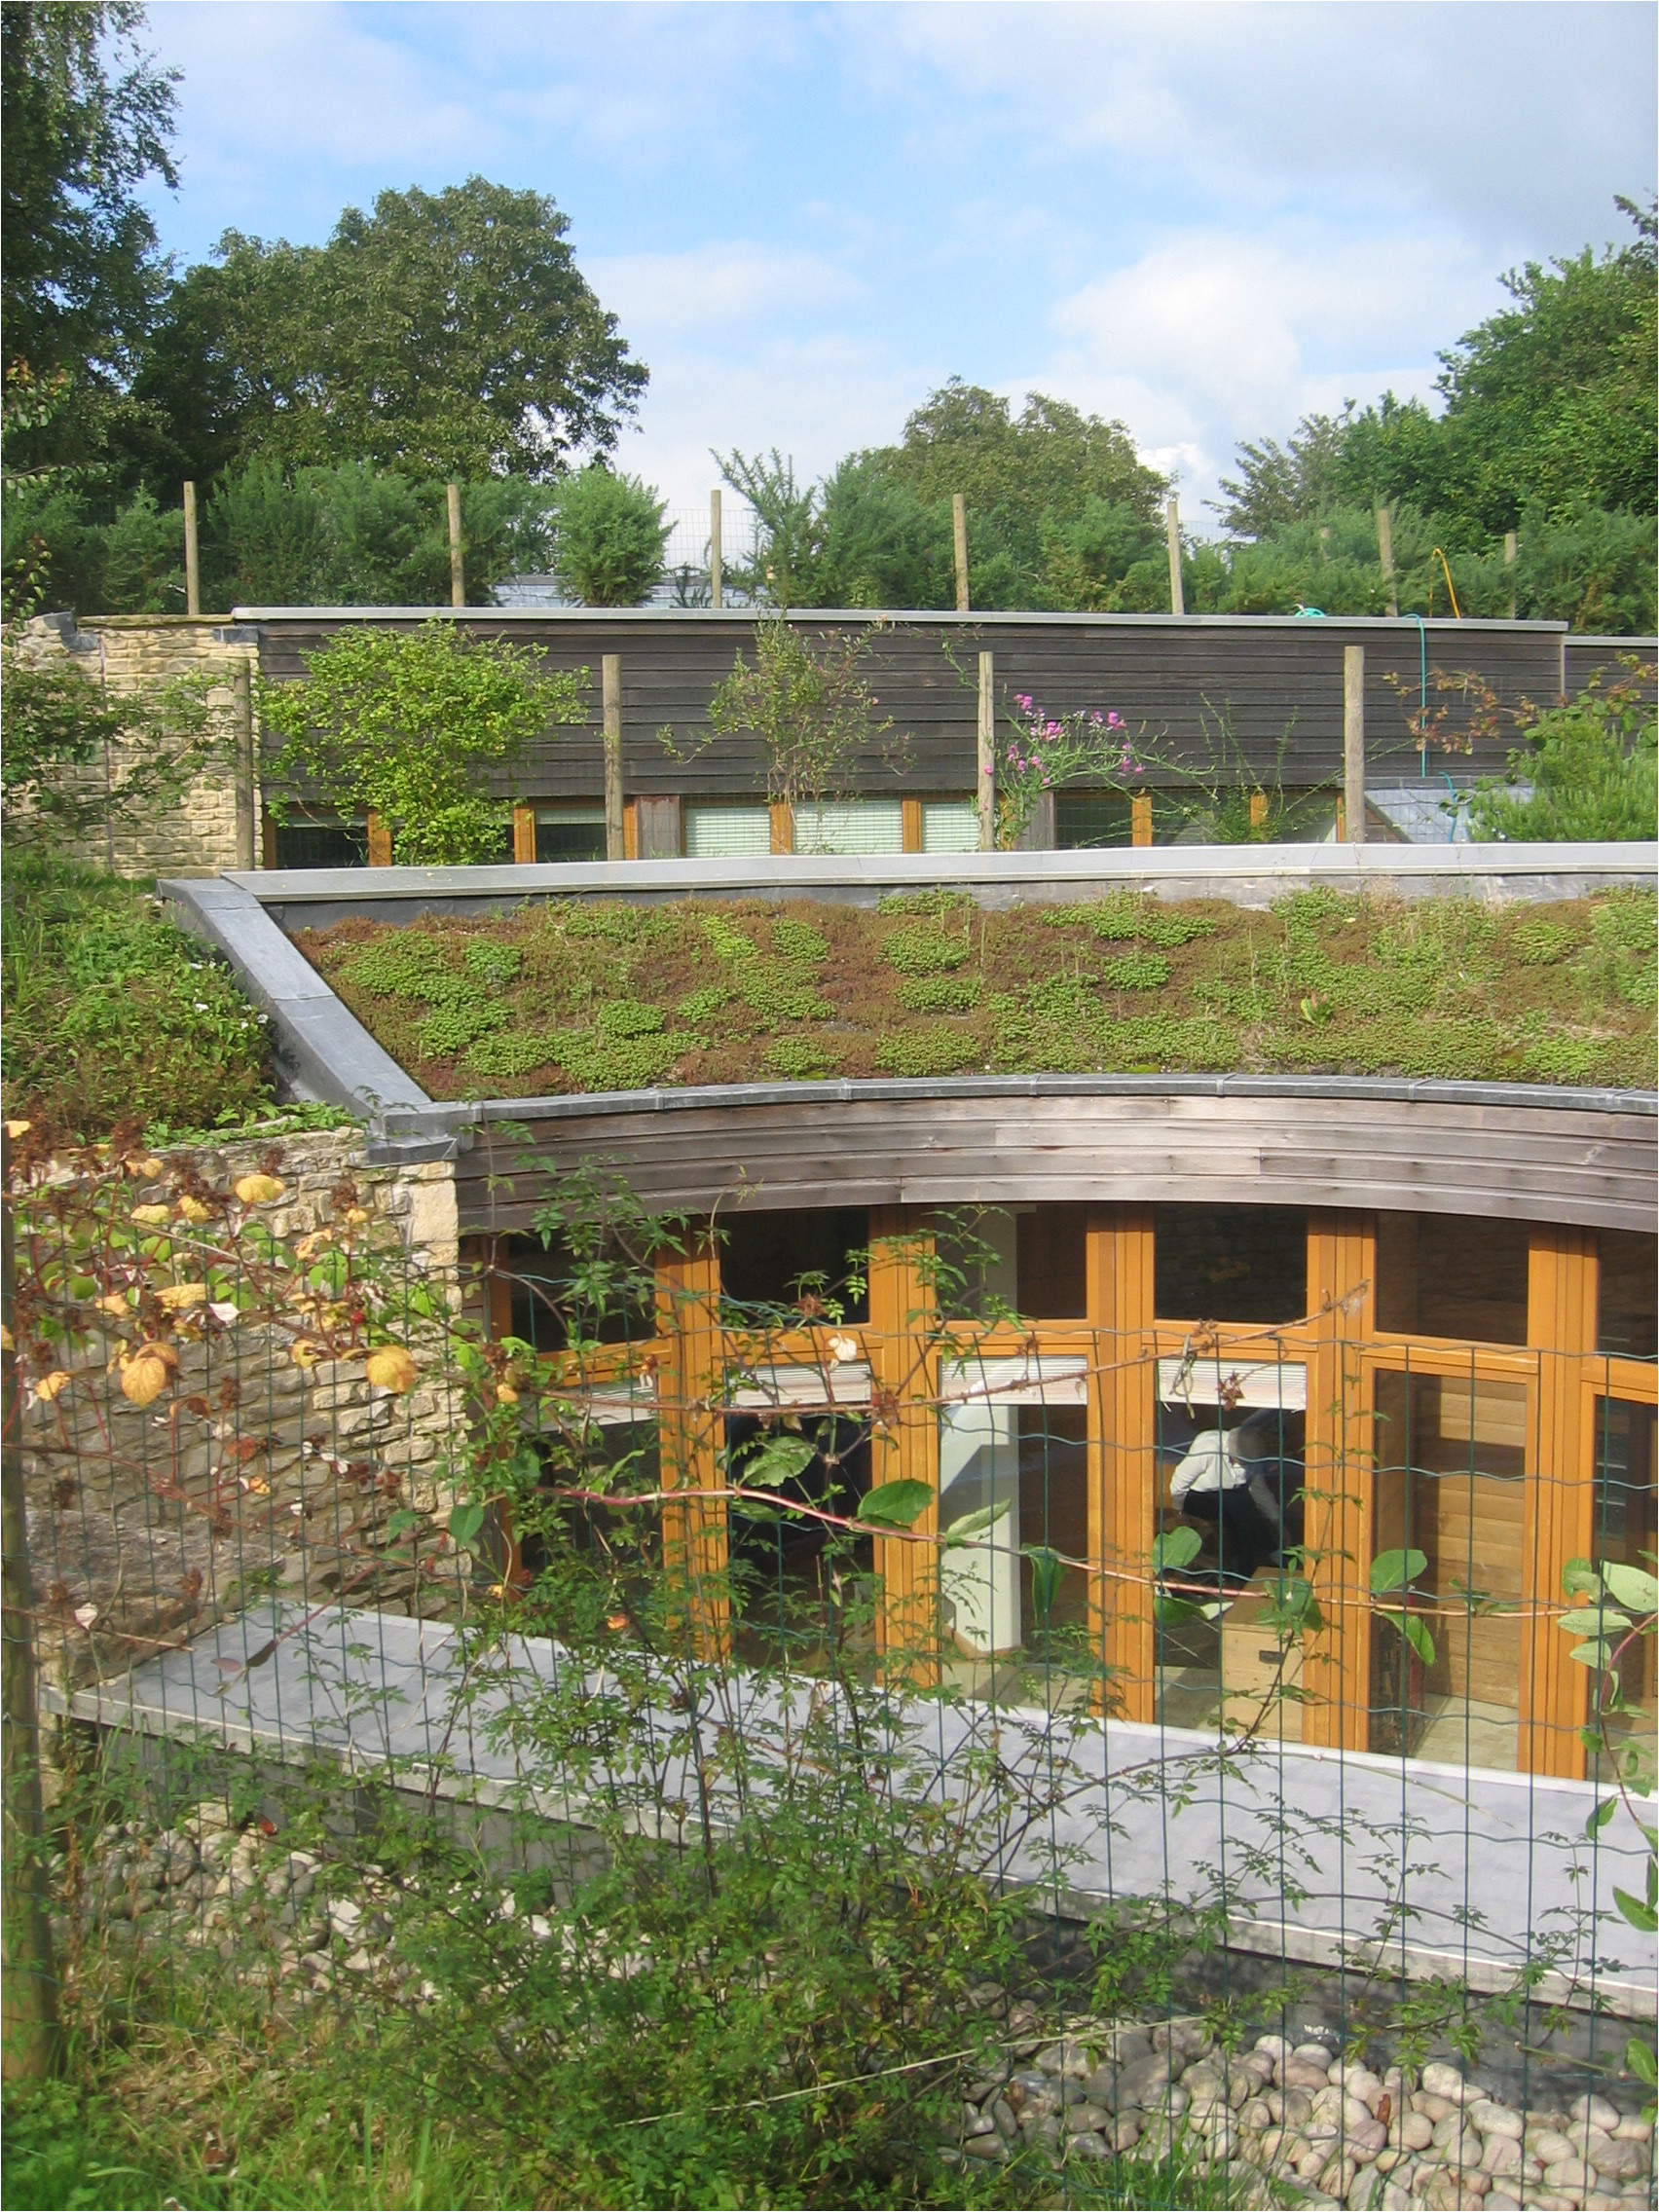 In Ground Homes Plans Aecb Visit An Earth Sheltered House In the Cotswolds